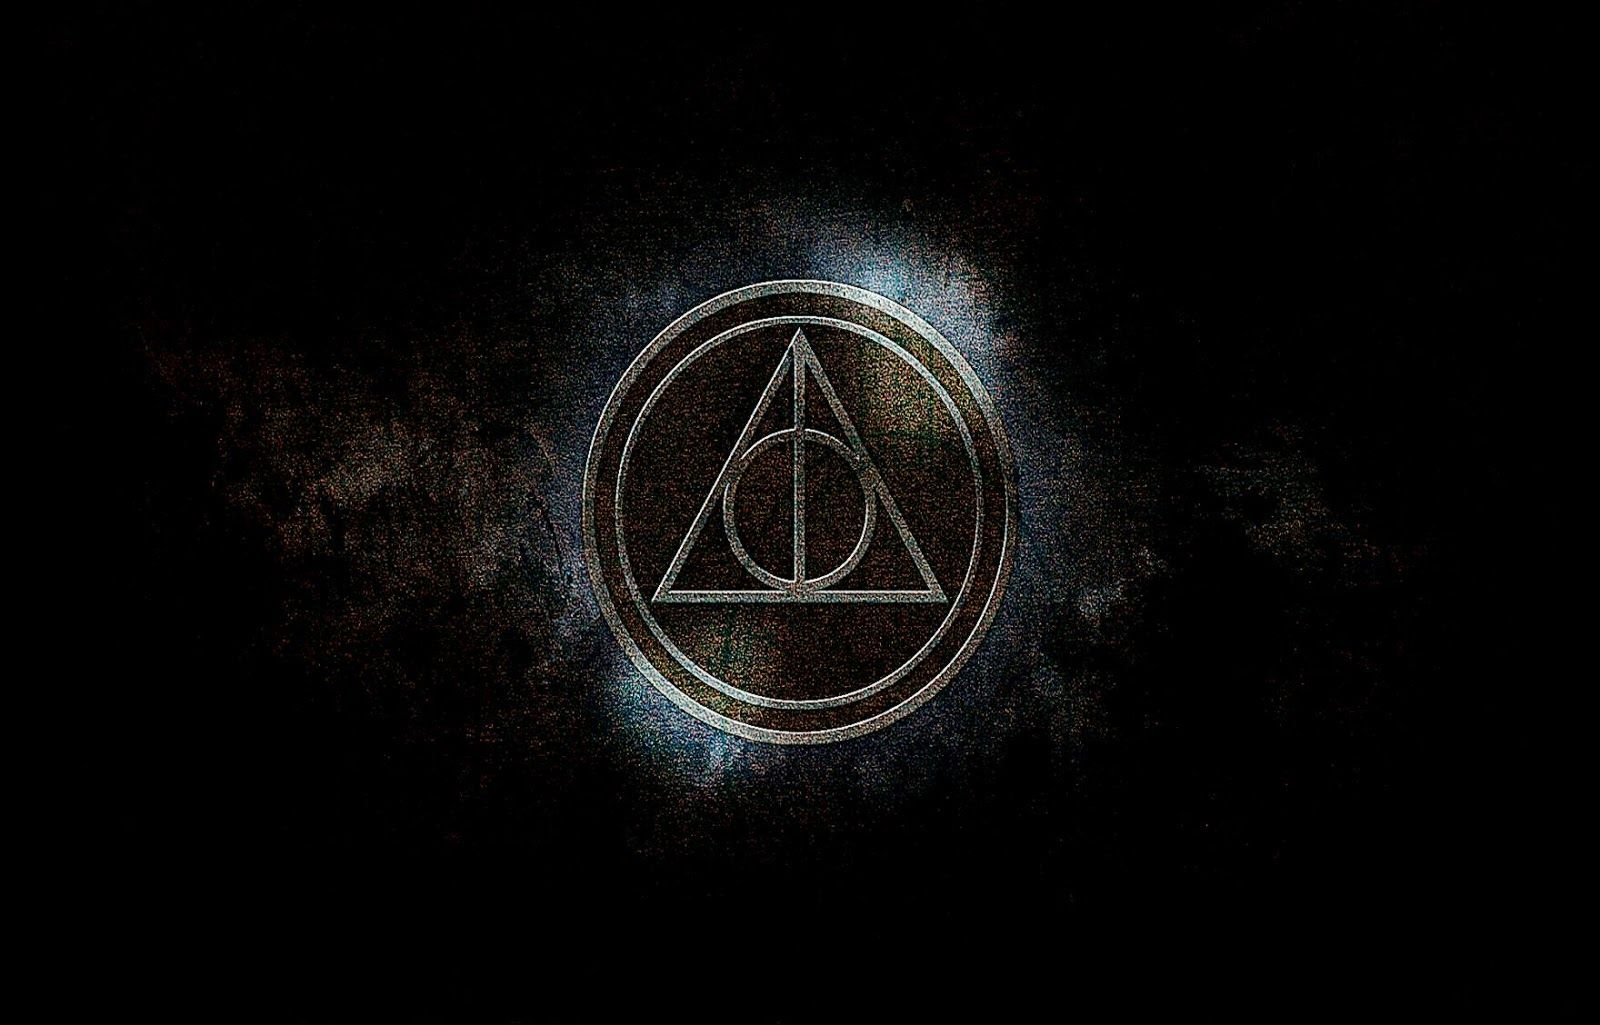 Best Wallpaper Harry Potter Facebook - 1ed8b846b0cc4168ec3e44fc19fb5f69  Graphic_15281.jpg